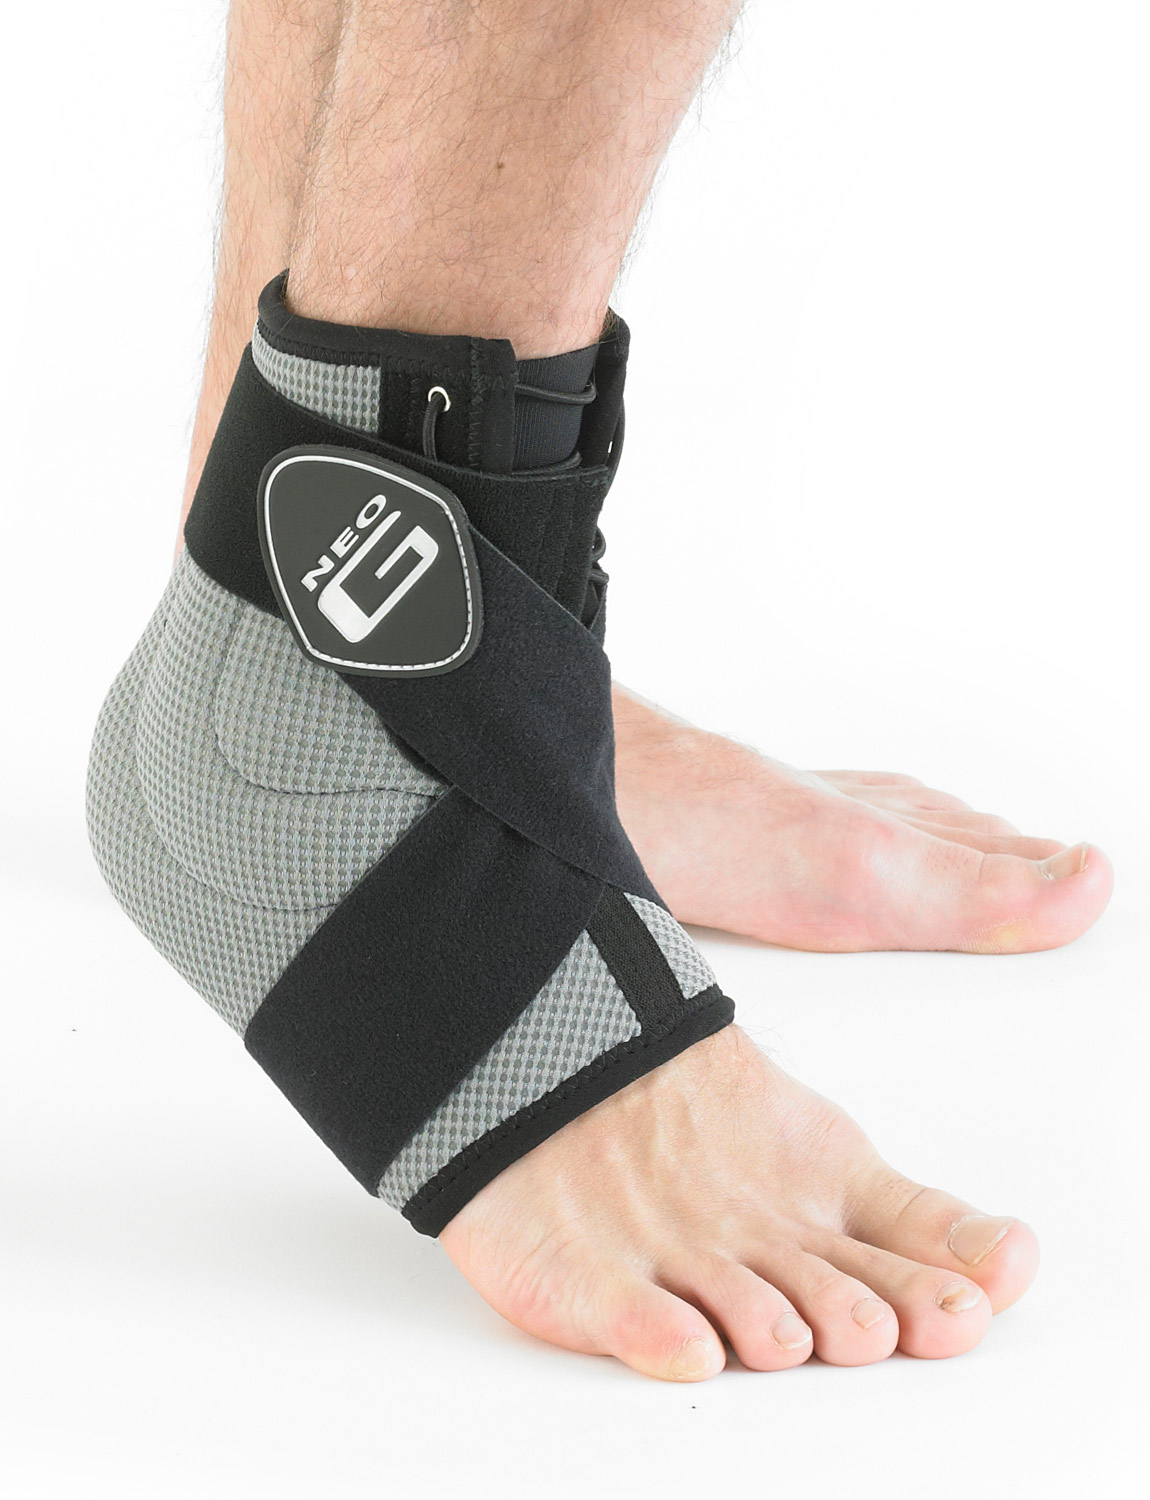 164 - STABILIZED ANKLE SUPPORT   Designed to help provide dynamic support around the ankle complex. The adjustable figure of 8 strap helps provide added support and compression during sporting and occupational activities. The support also helps to reduce excessive planterflexion, inversion and eversion movements at the ankle, useful with ligamentous injury and instability.